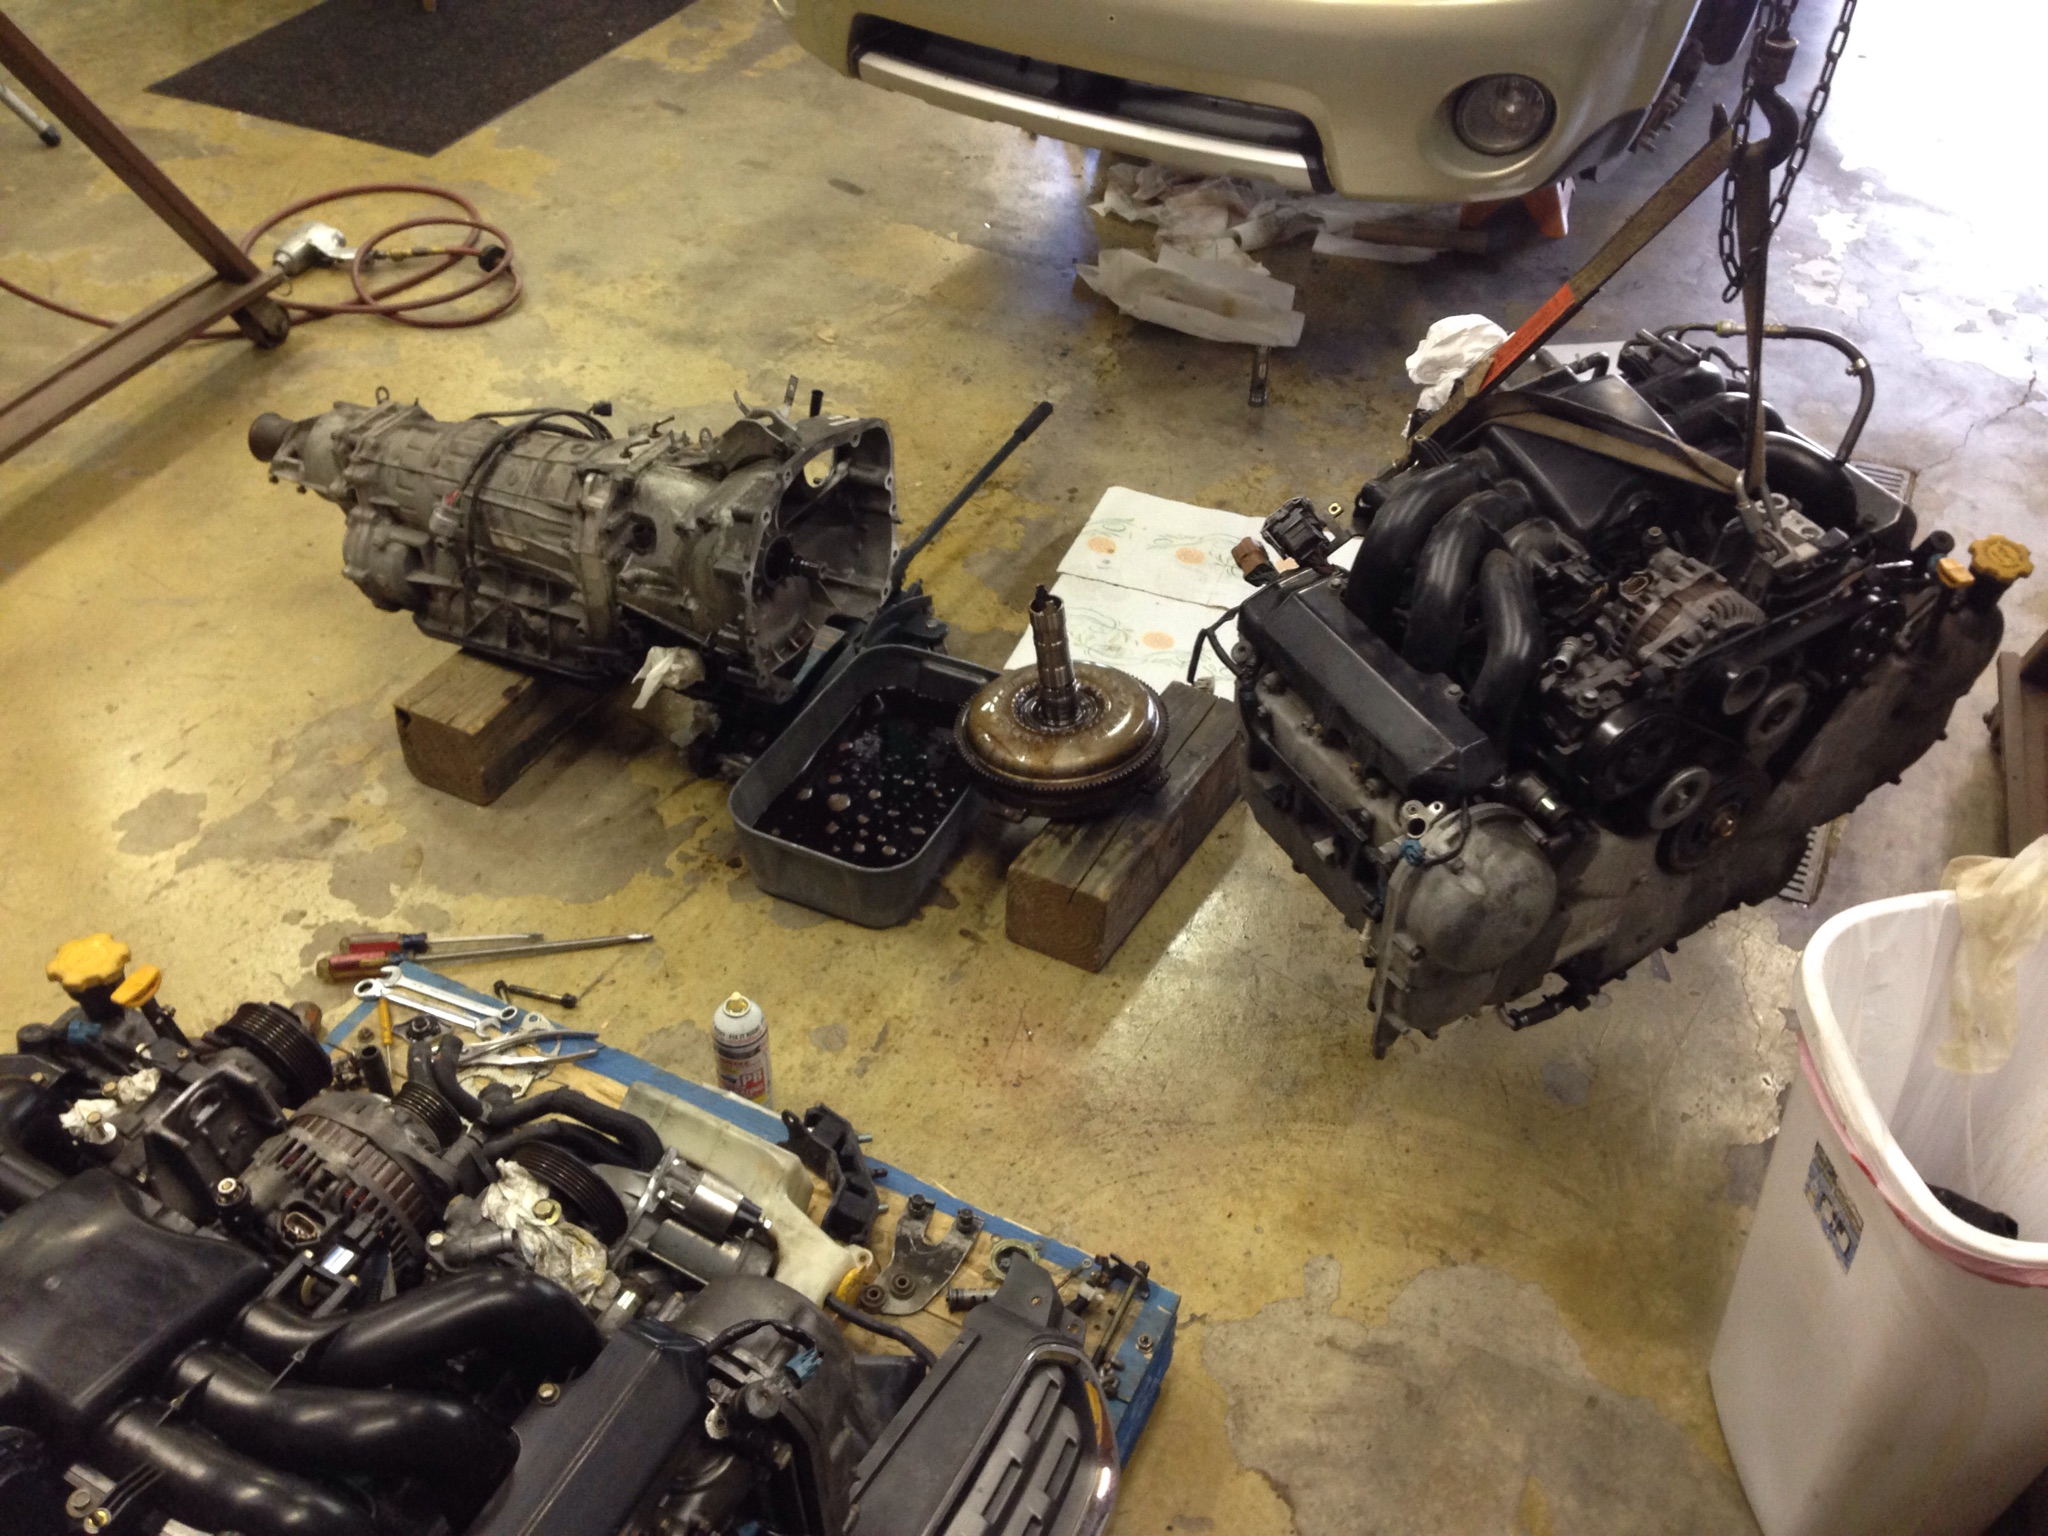 H6 EZ30R JDM engine swap | Subaru Outback Forums